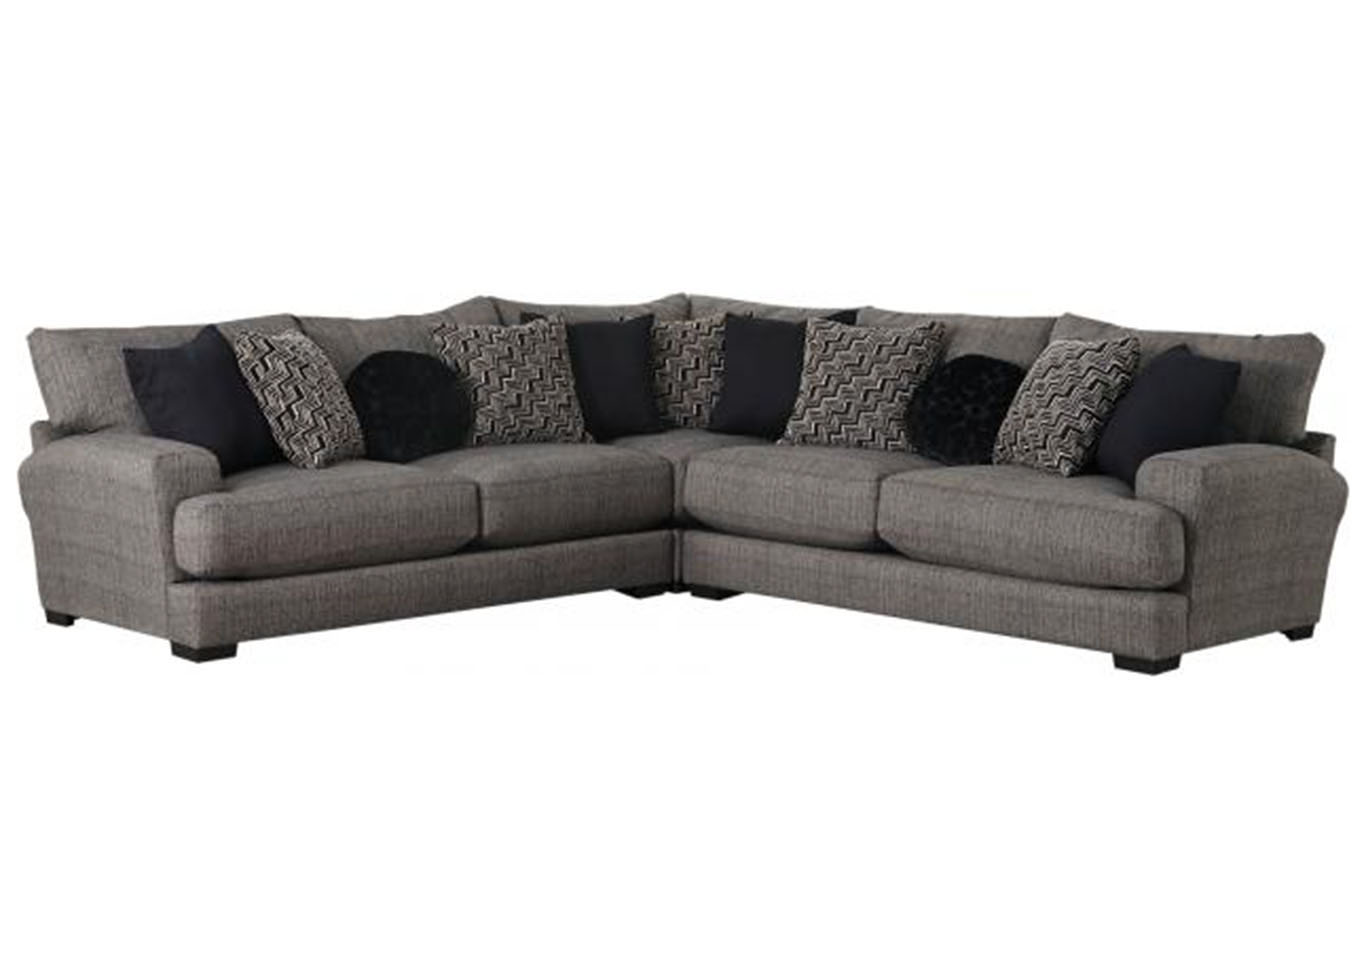 Bolero 3 Pc Sectional W/USB Port,Huffman Koos